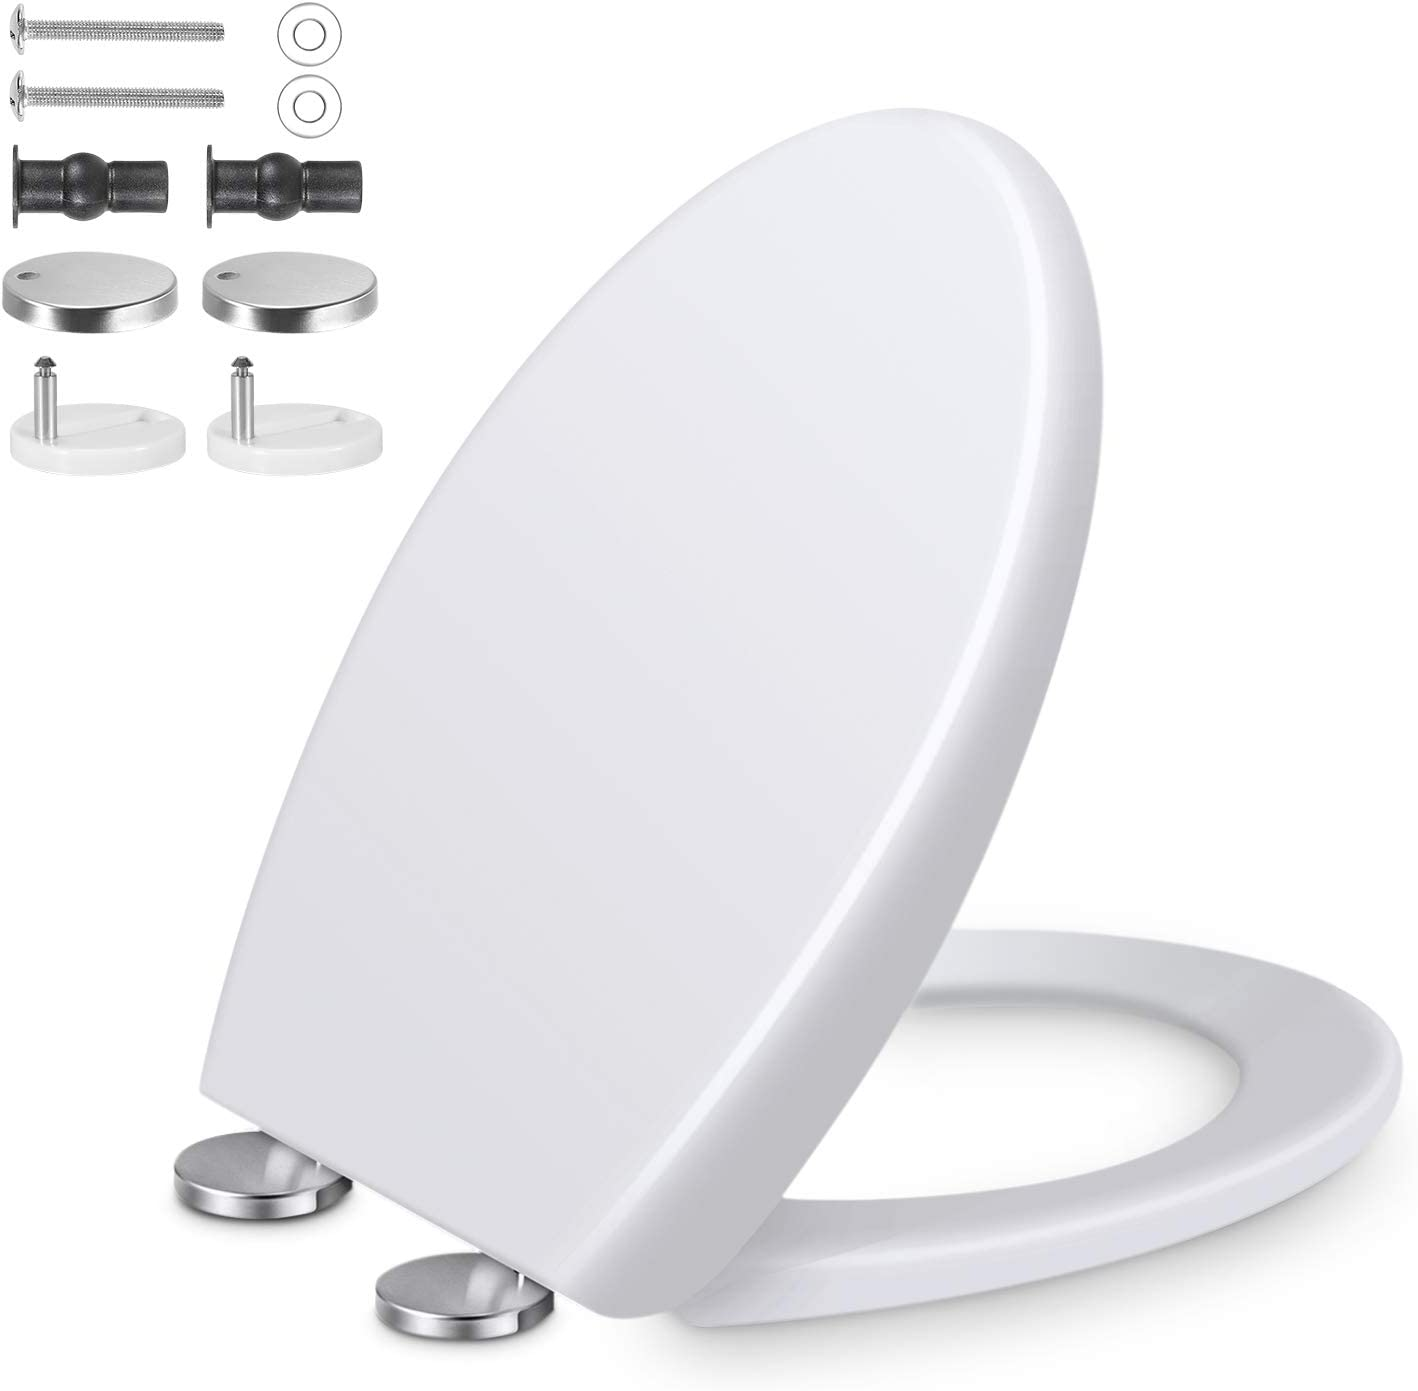 Toilet Seat Soft Close, Oval Toilet Seats Lid with Adjustable Stainless Hinges, Durable WC Loo Seat, Top Fixing, Easy Installation and Quick Release, PP Material, Fit Holes Distance 10-23cm